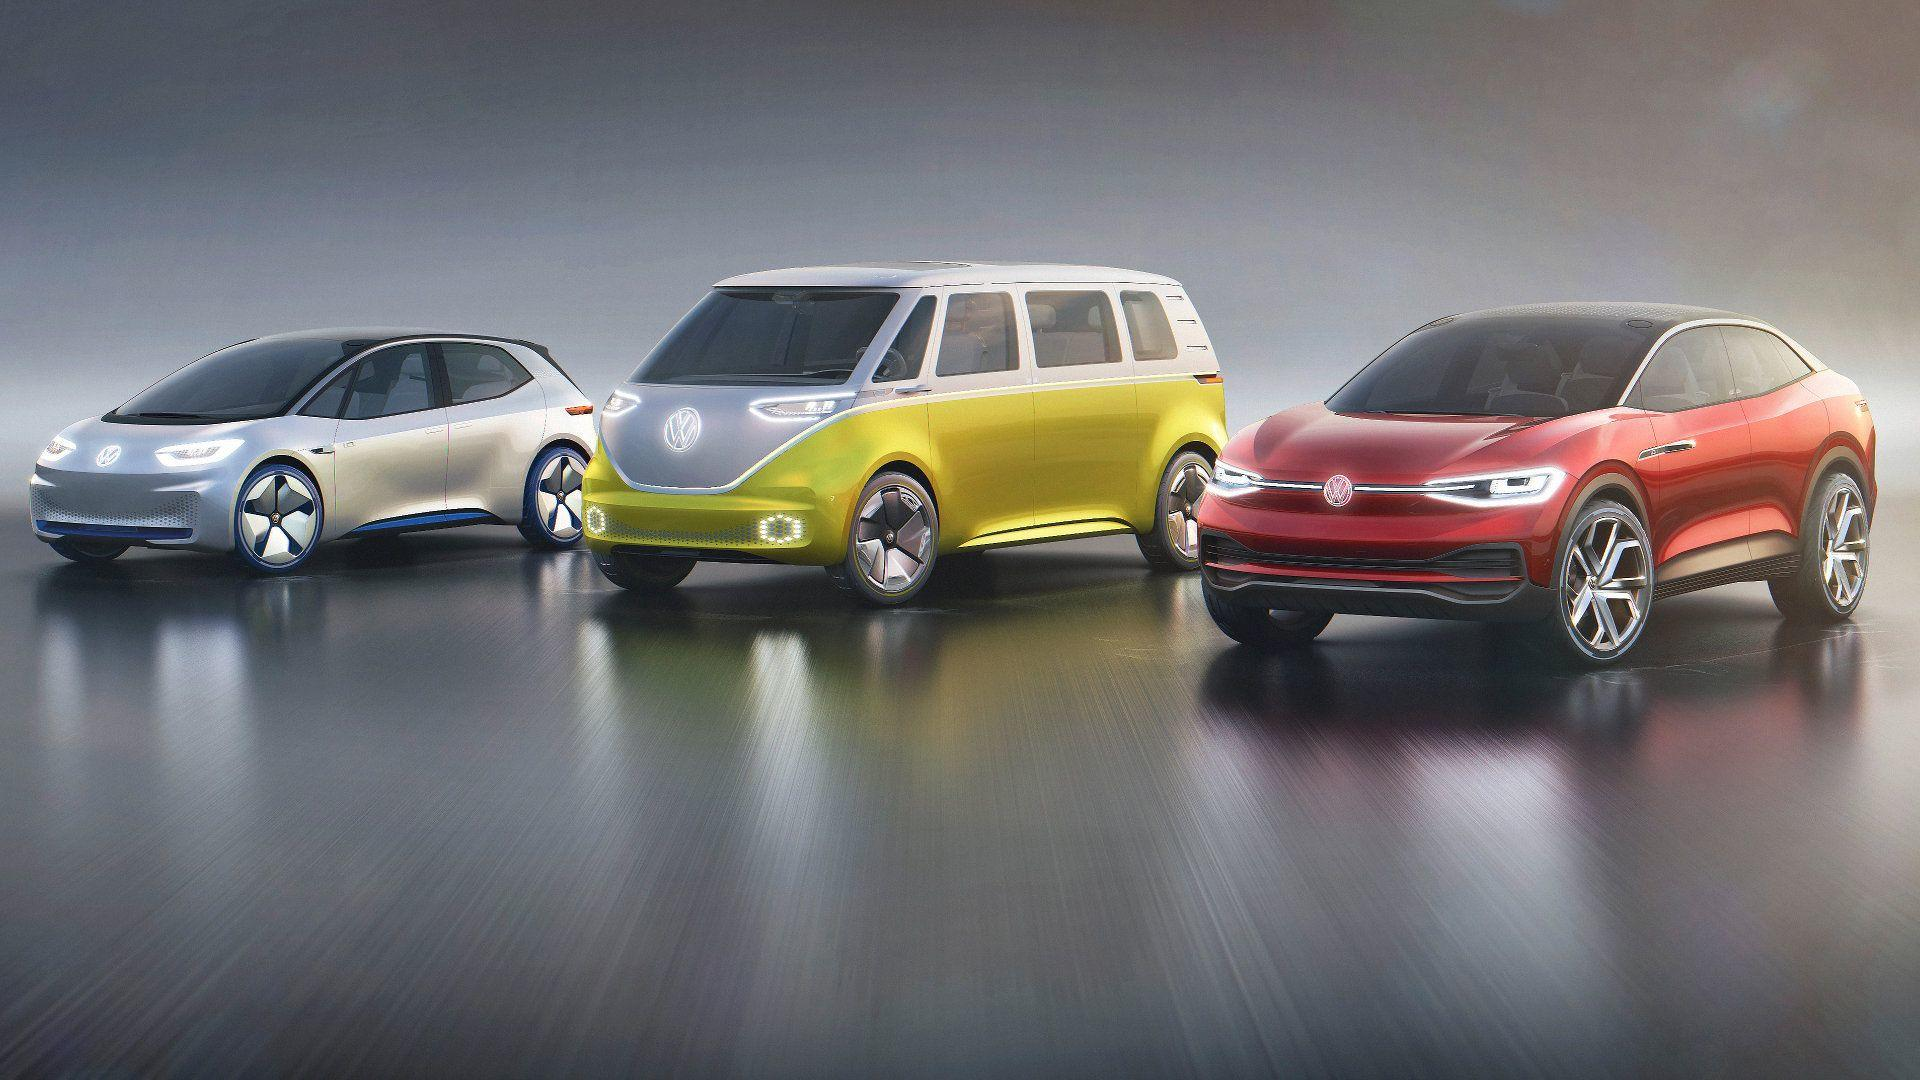 Vw Signs Deals With Partners For Upcoming I D Project